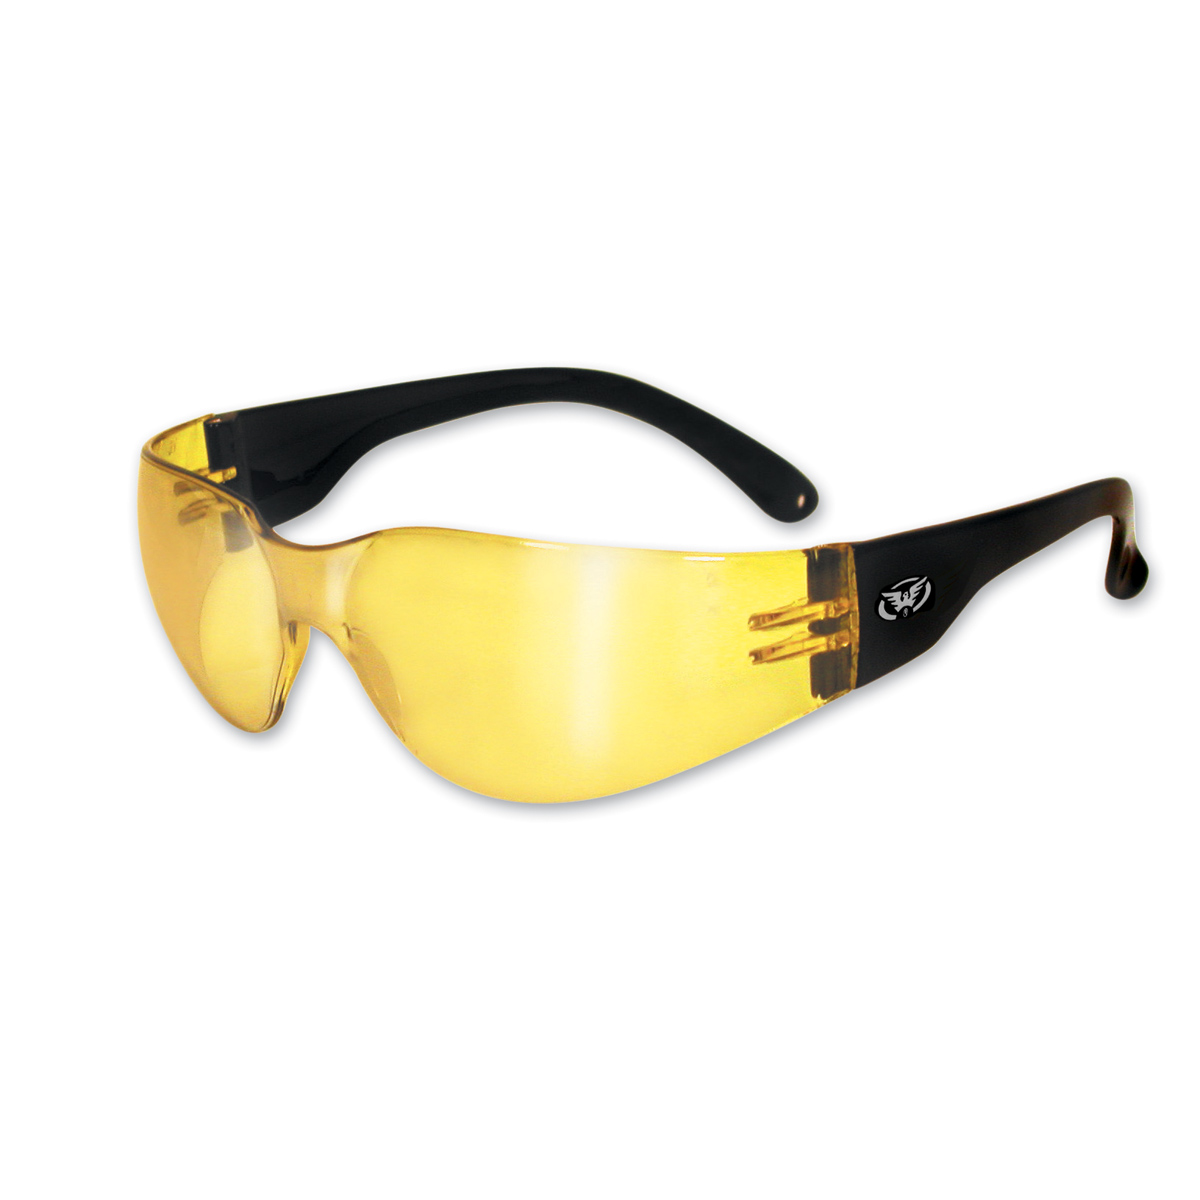 Global Vision Eyewear Rider Sunglasses with Yellow Tint Mirror Lens ... b6758a1a37d